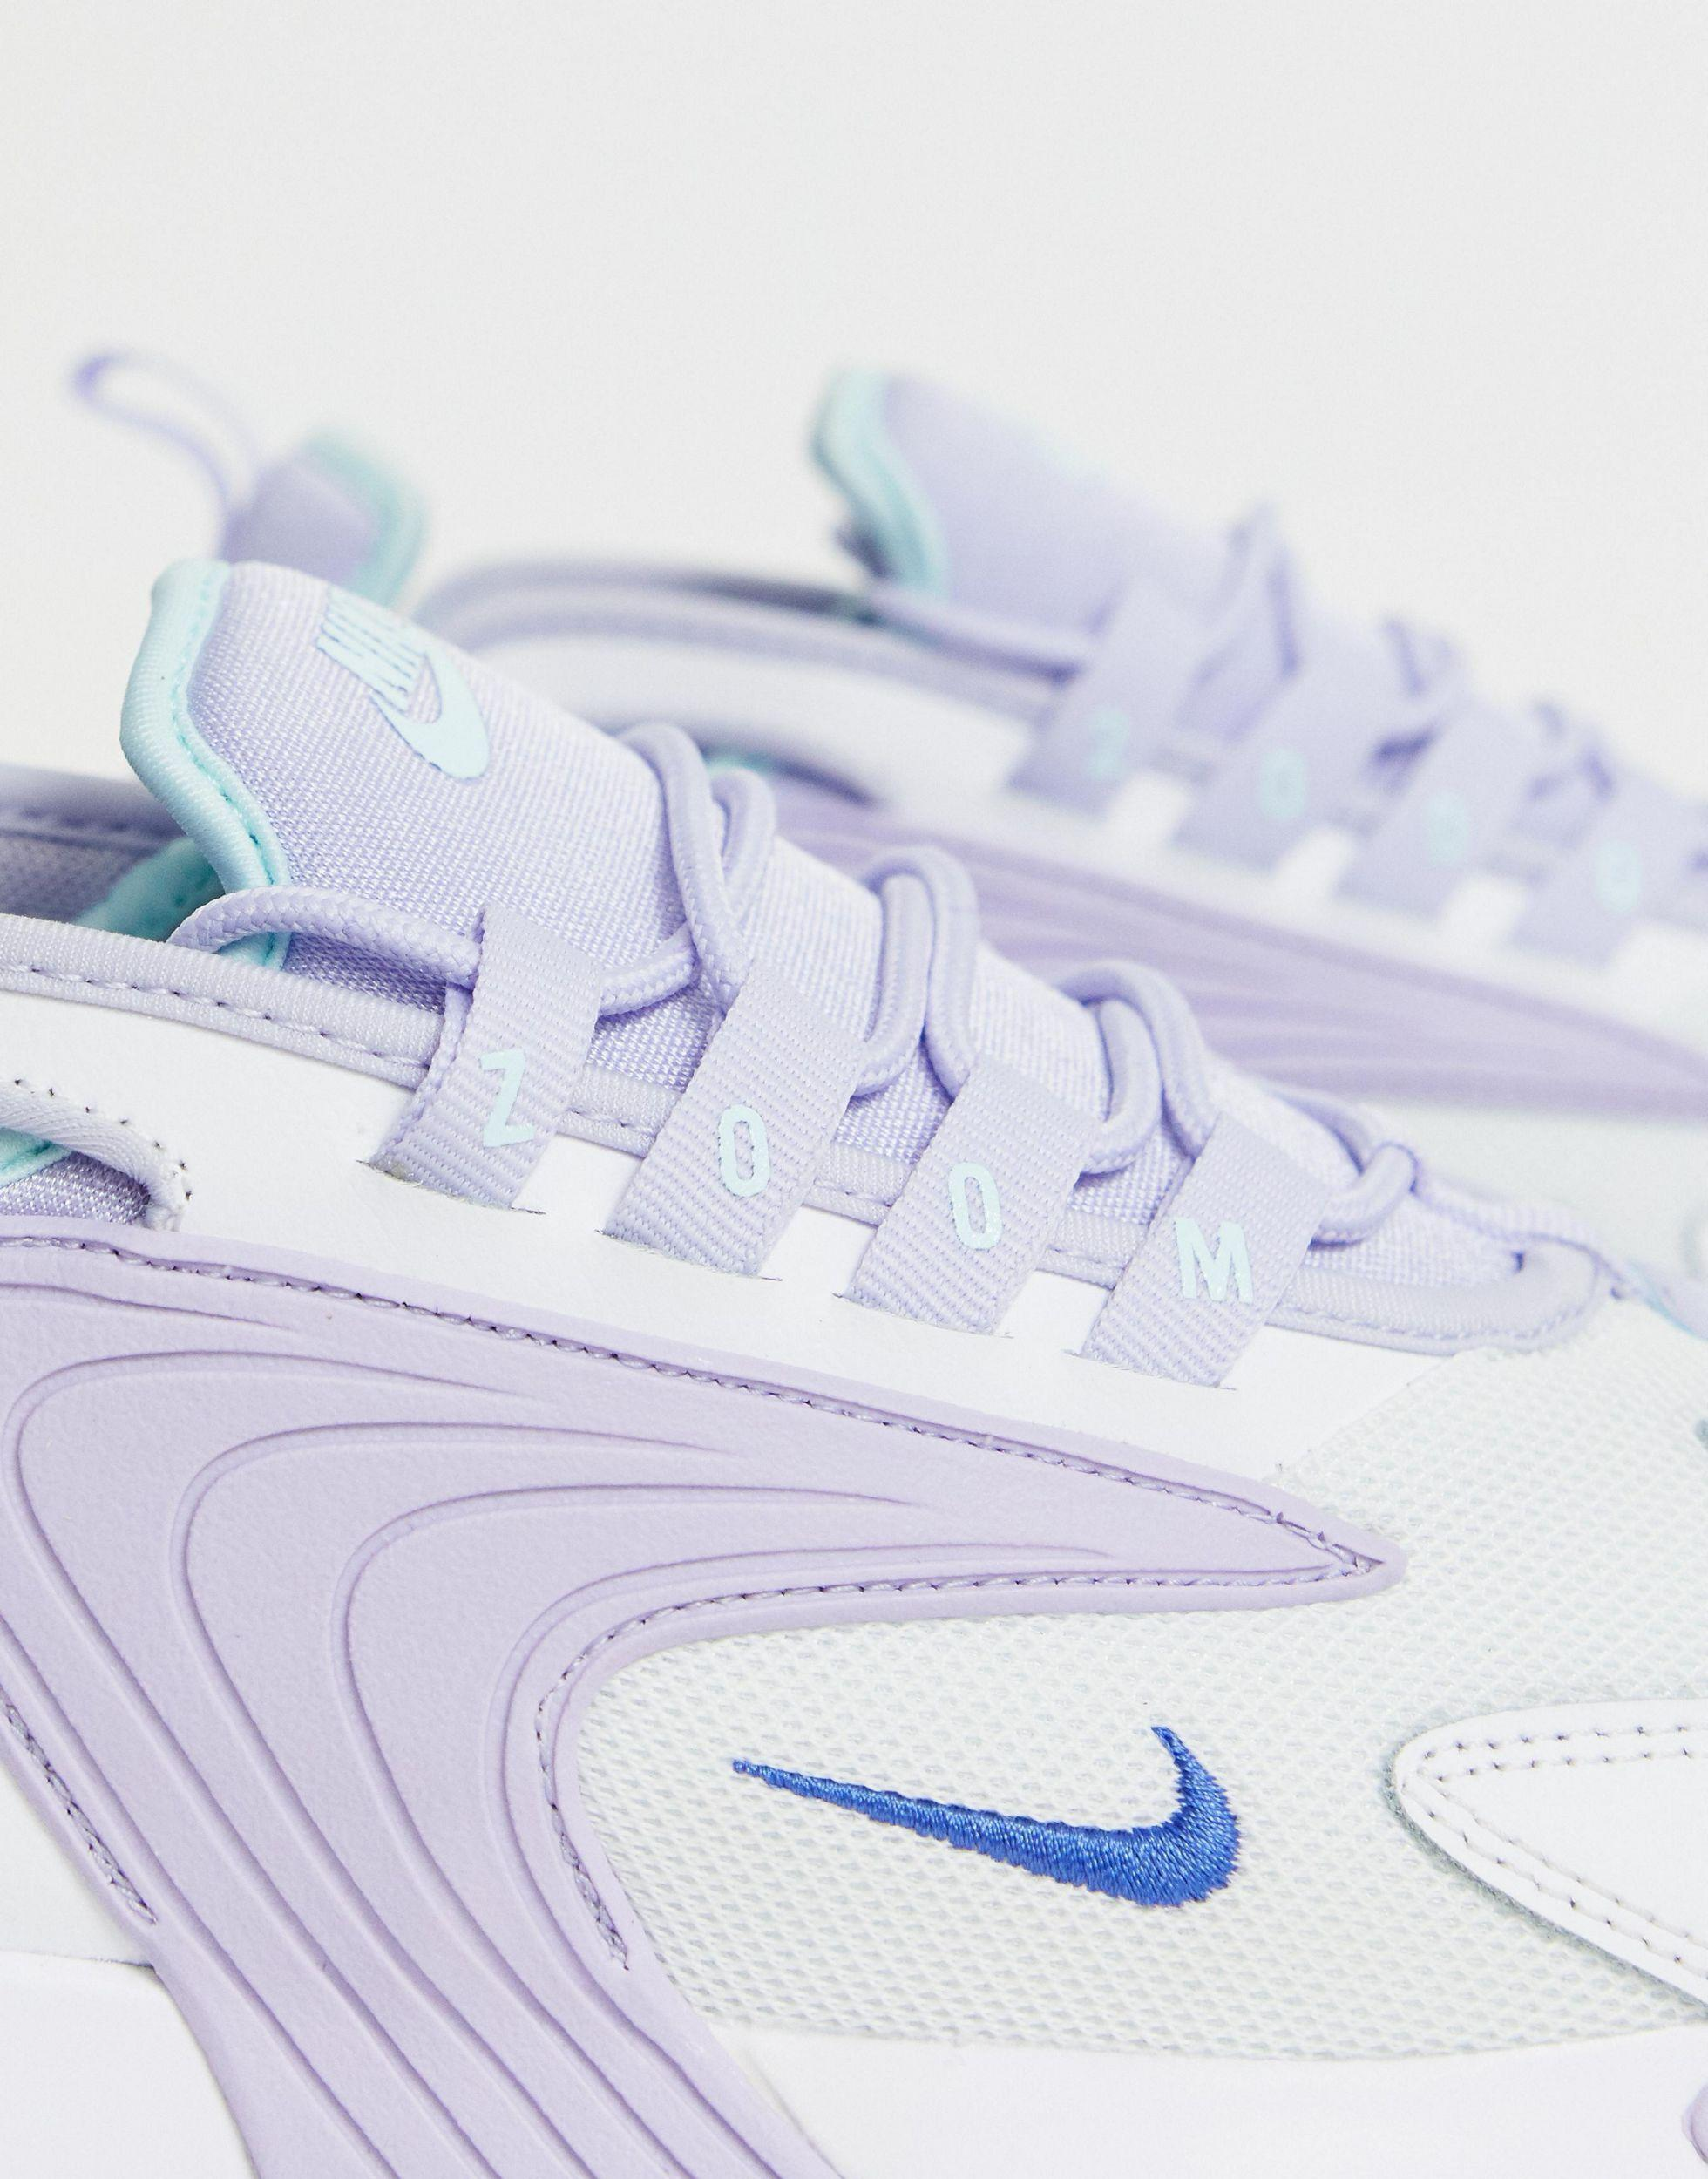 Nike Leather Lilac Zoom 2k Sneakers in